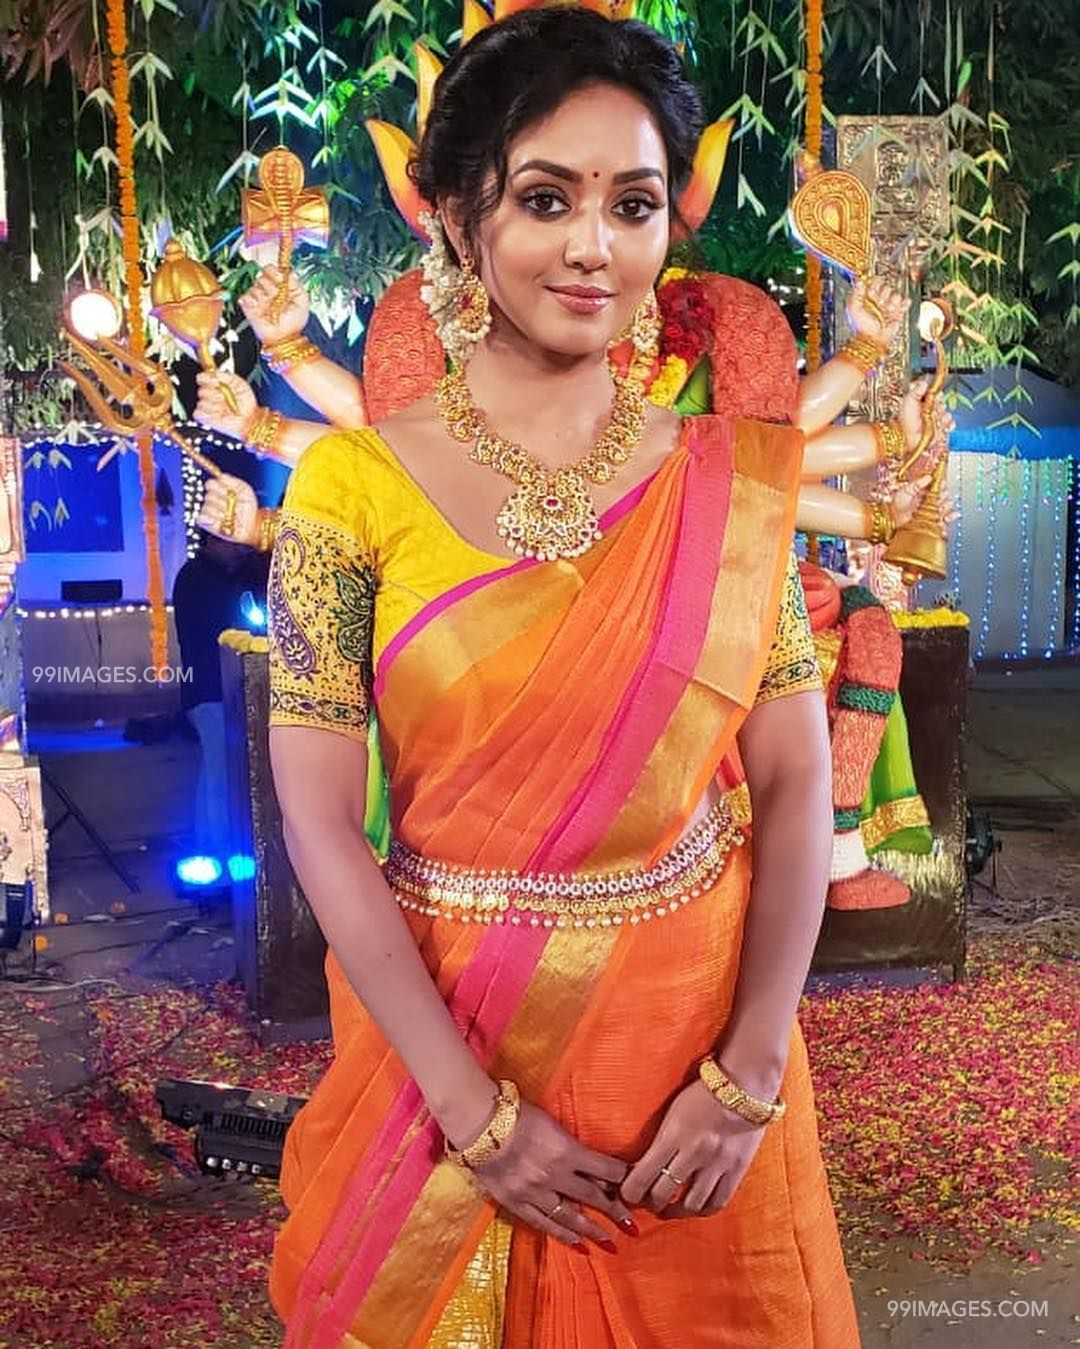 Vidhya Beautiful HD Photos & Mobile Wallpapers HD (Android/iPhone) (1080p) (18890) - Vidhya